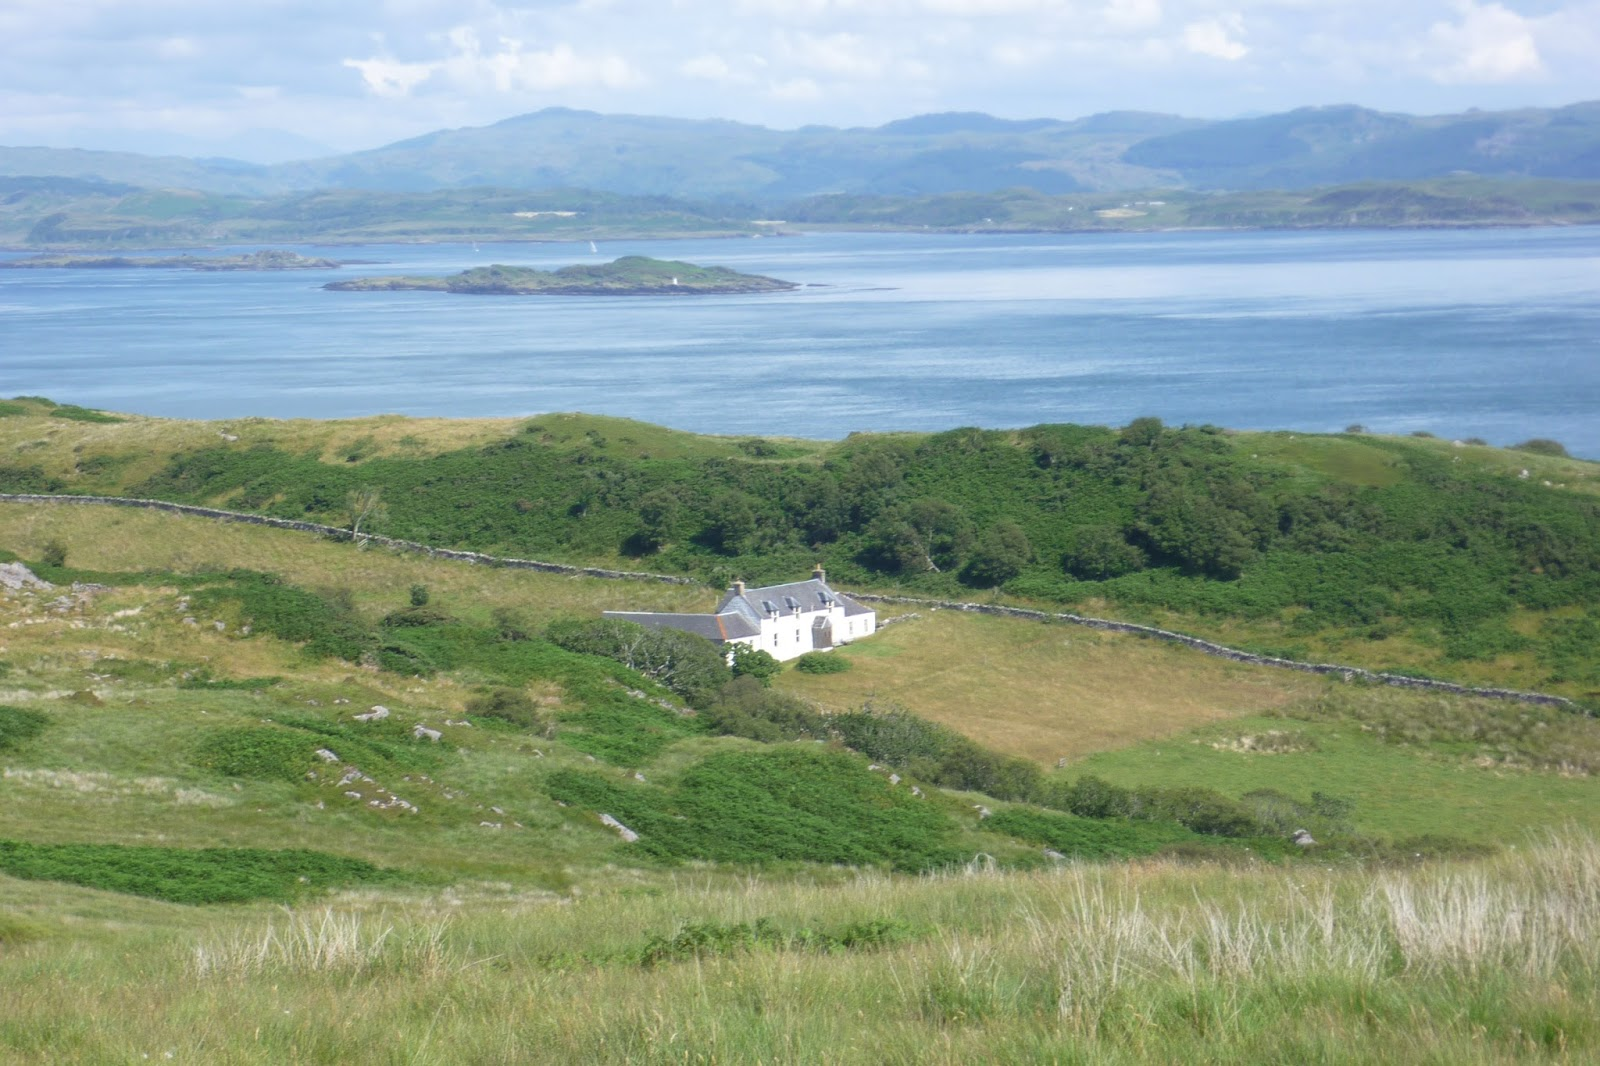 Notts and Bolts: Walking on Jura: Corryvrecken